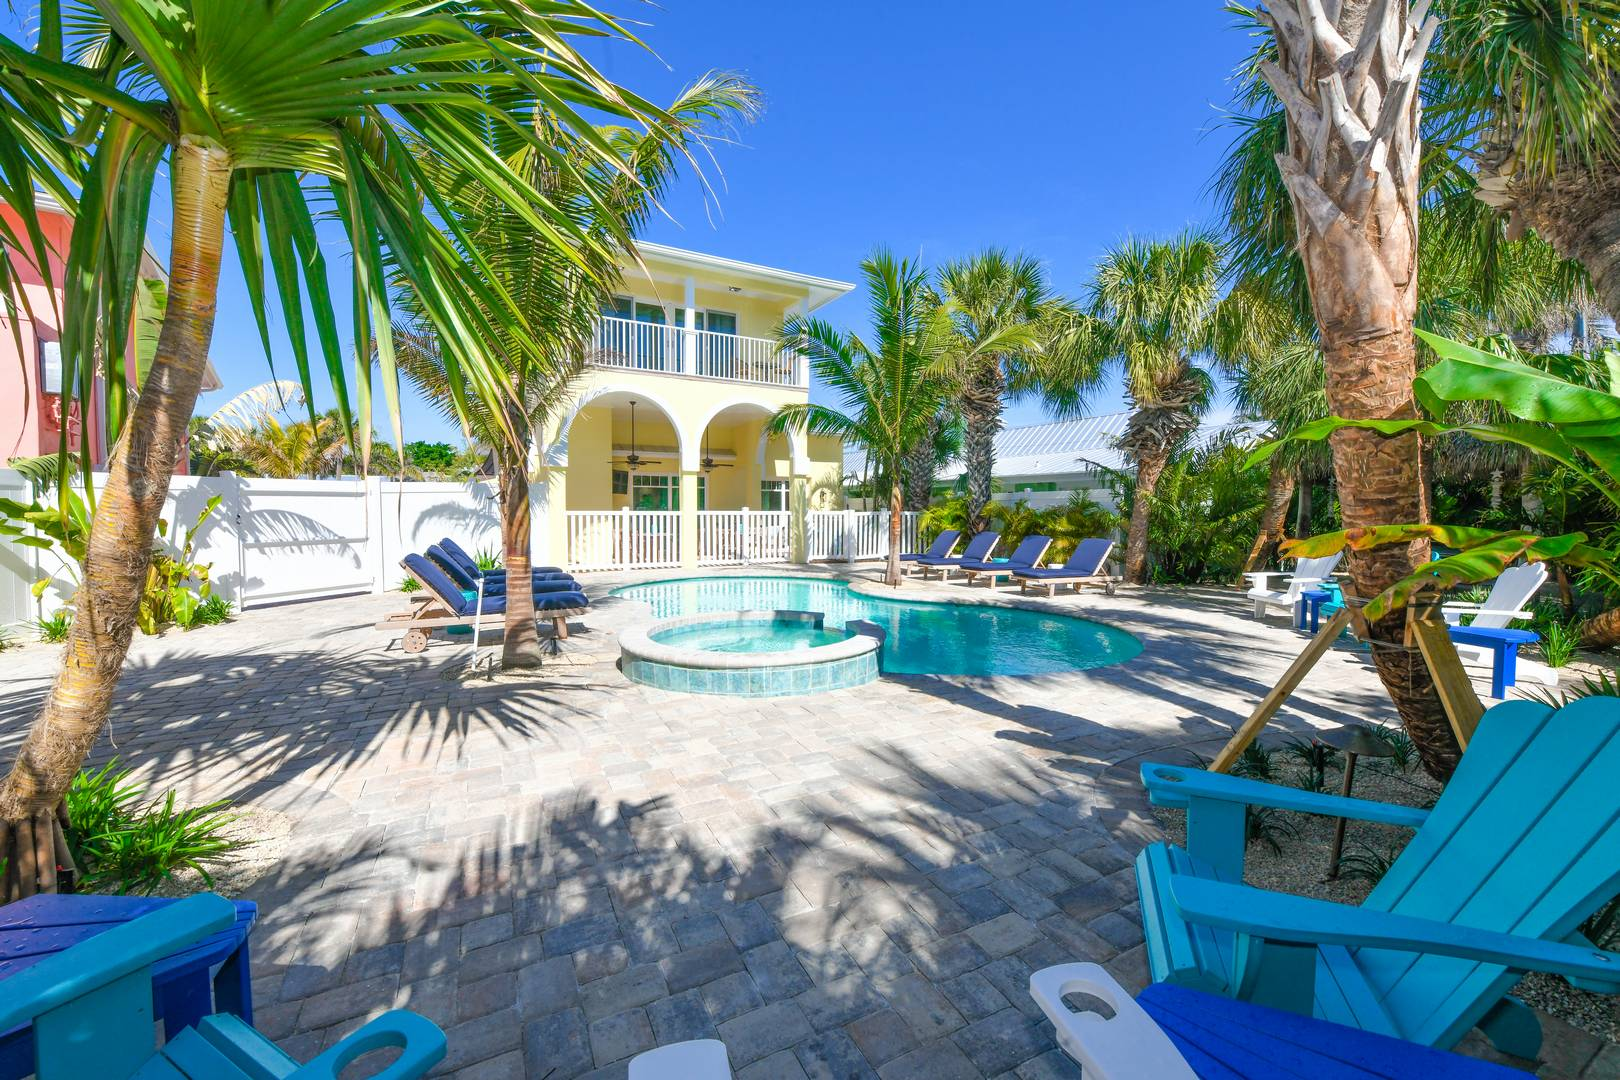 Best Entertaining Back Yard on Siesta Key